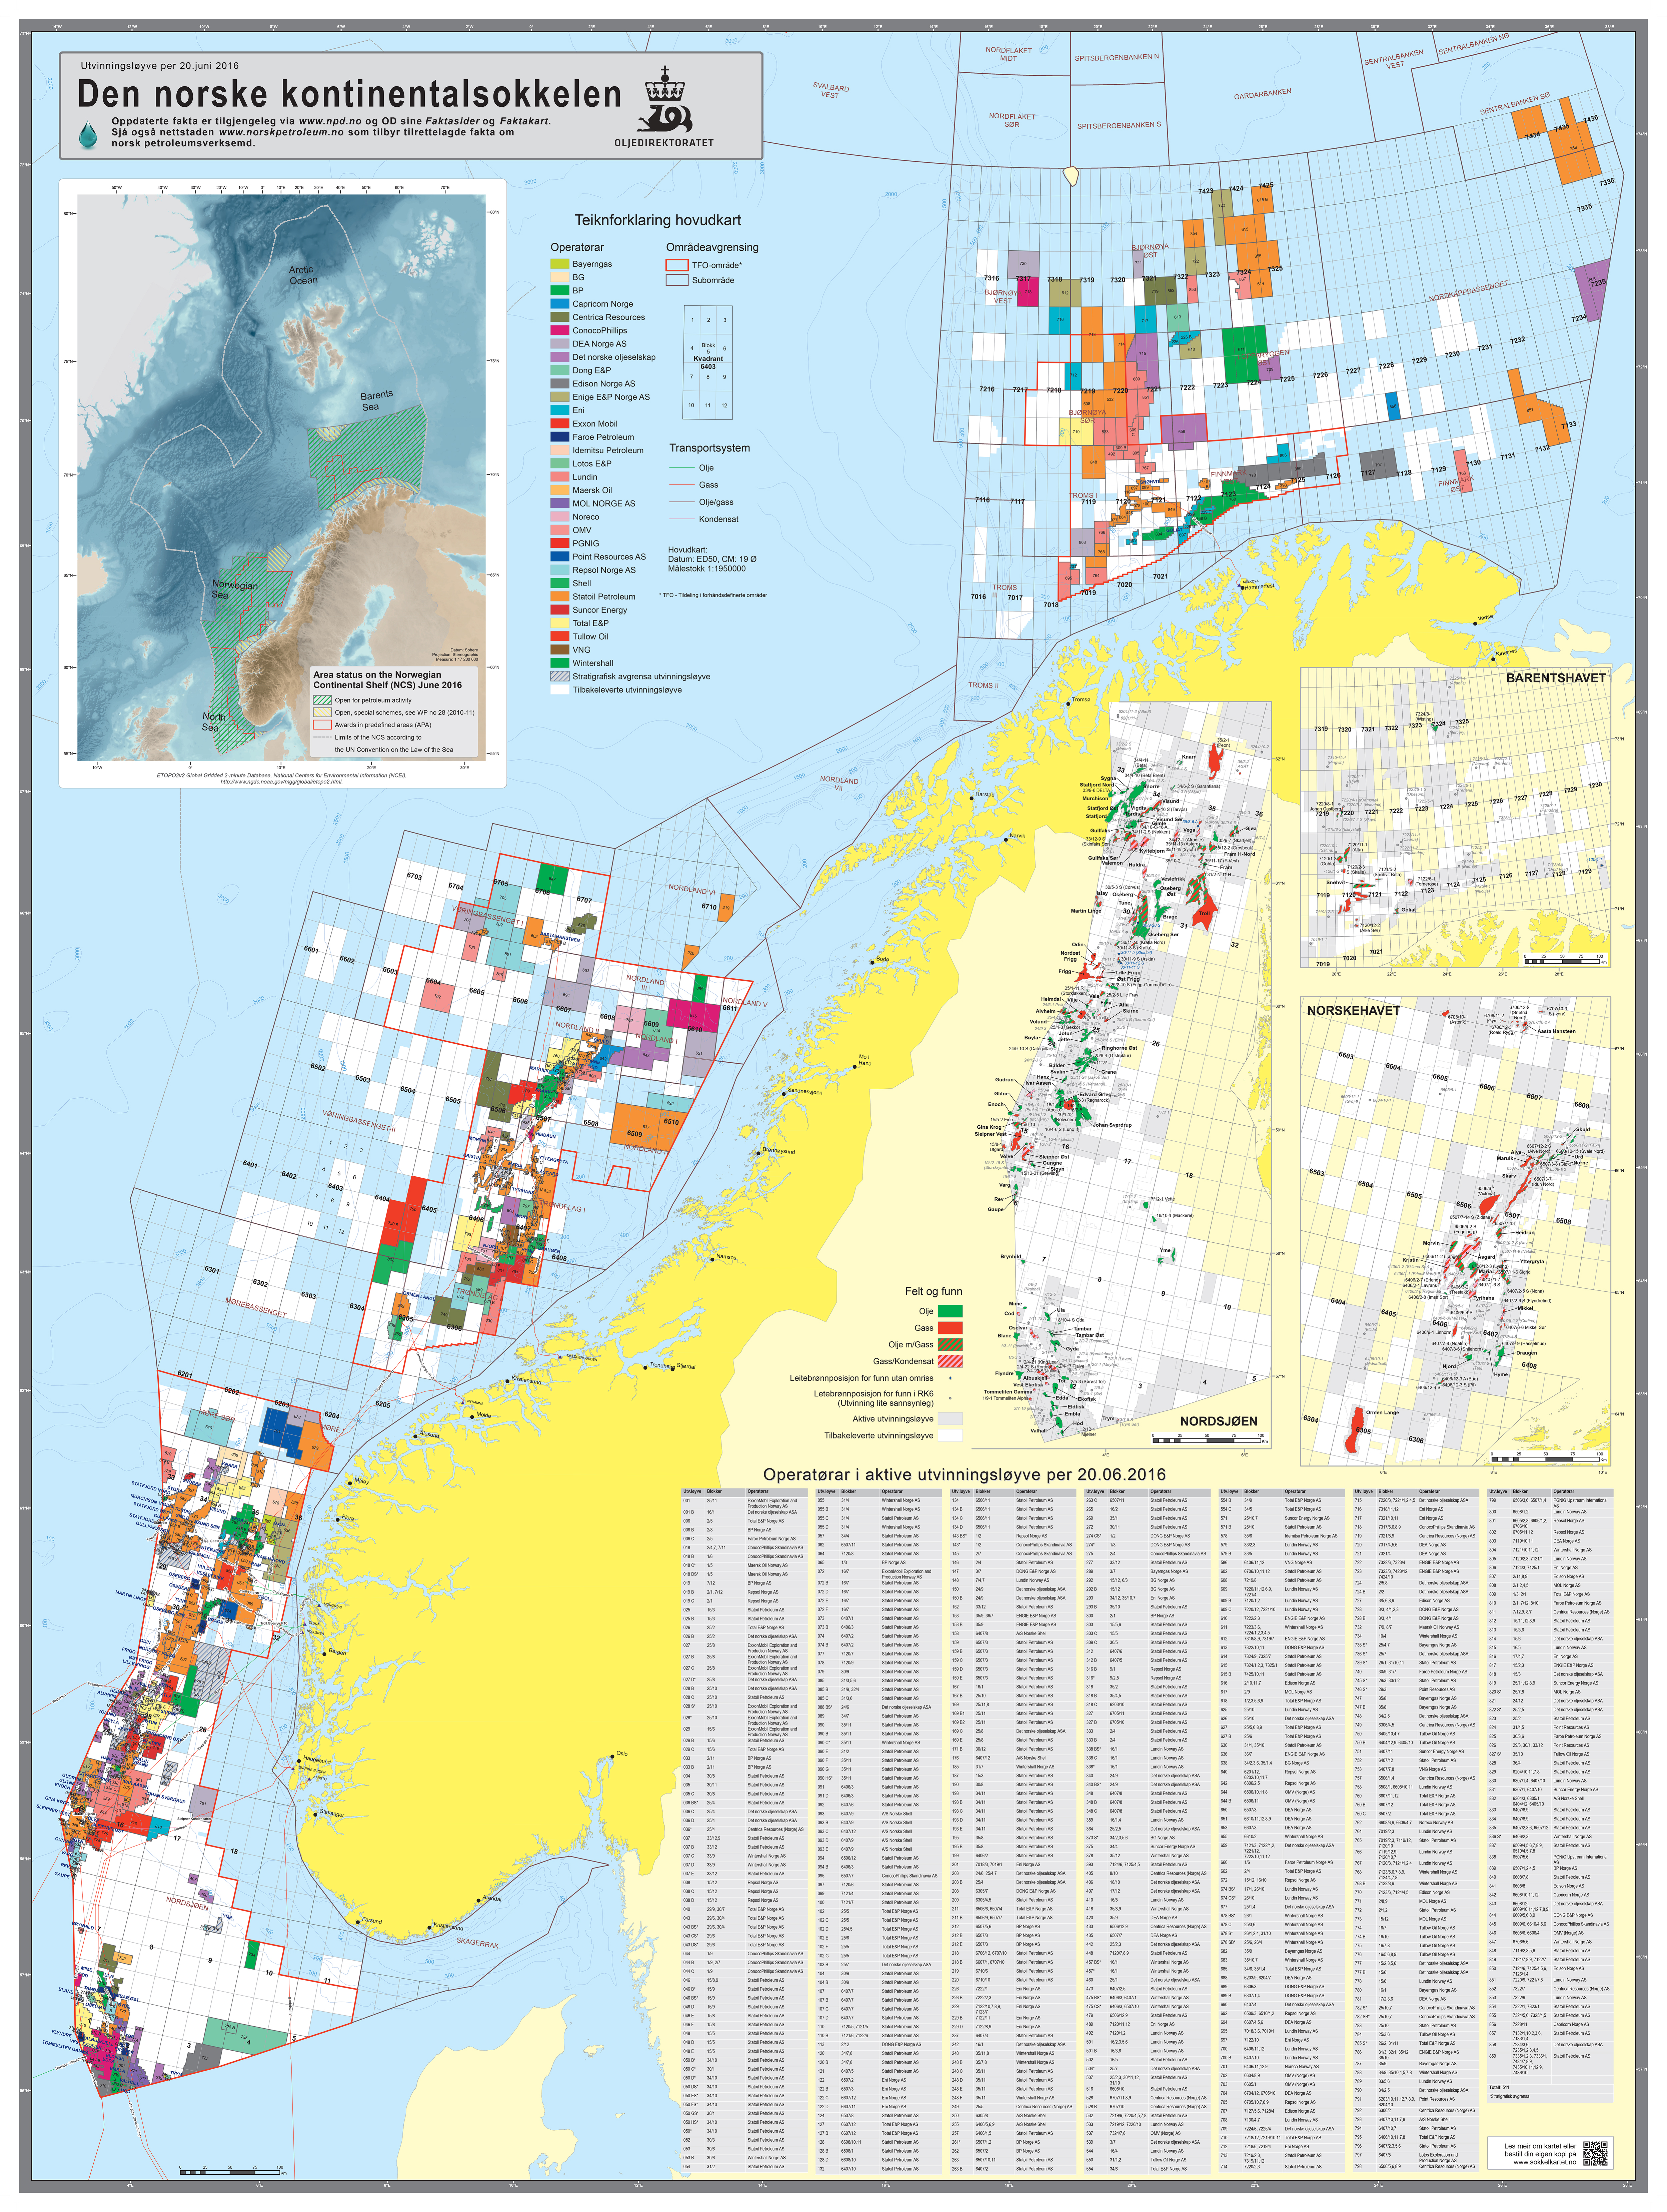 Source: Norwegian Petroleum Directorate